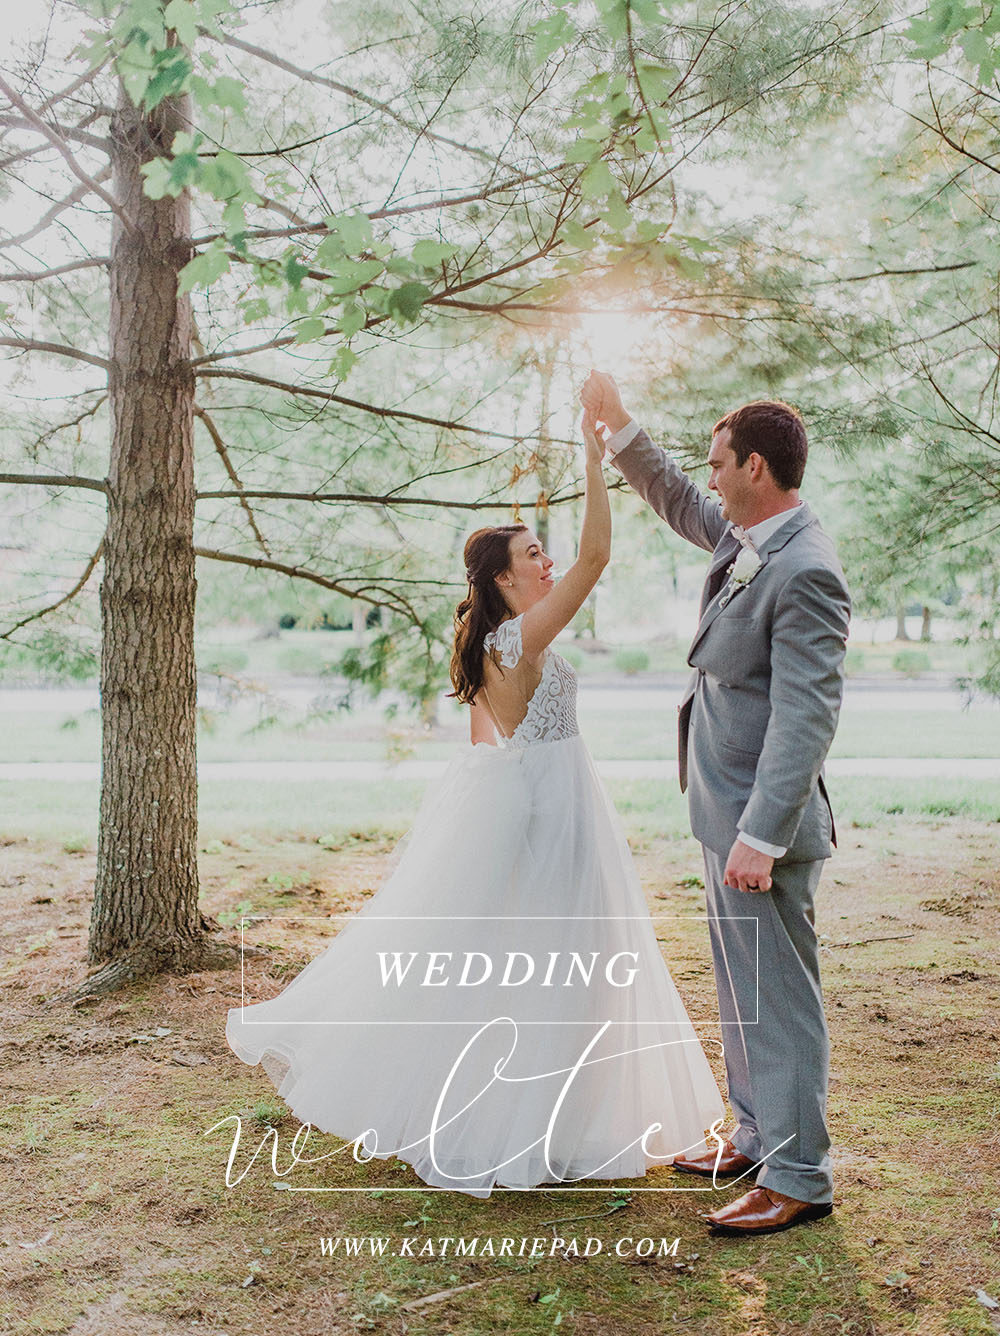 Casey + Alan | Romantic Summer Wedding | The Red Barn at Sycamore Farms - Terre Haute, IN | International Elopement & Destination Wedding Photographers in Indianapolis, IN